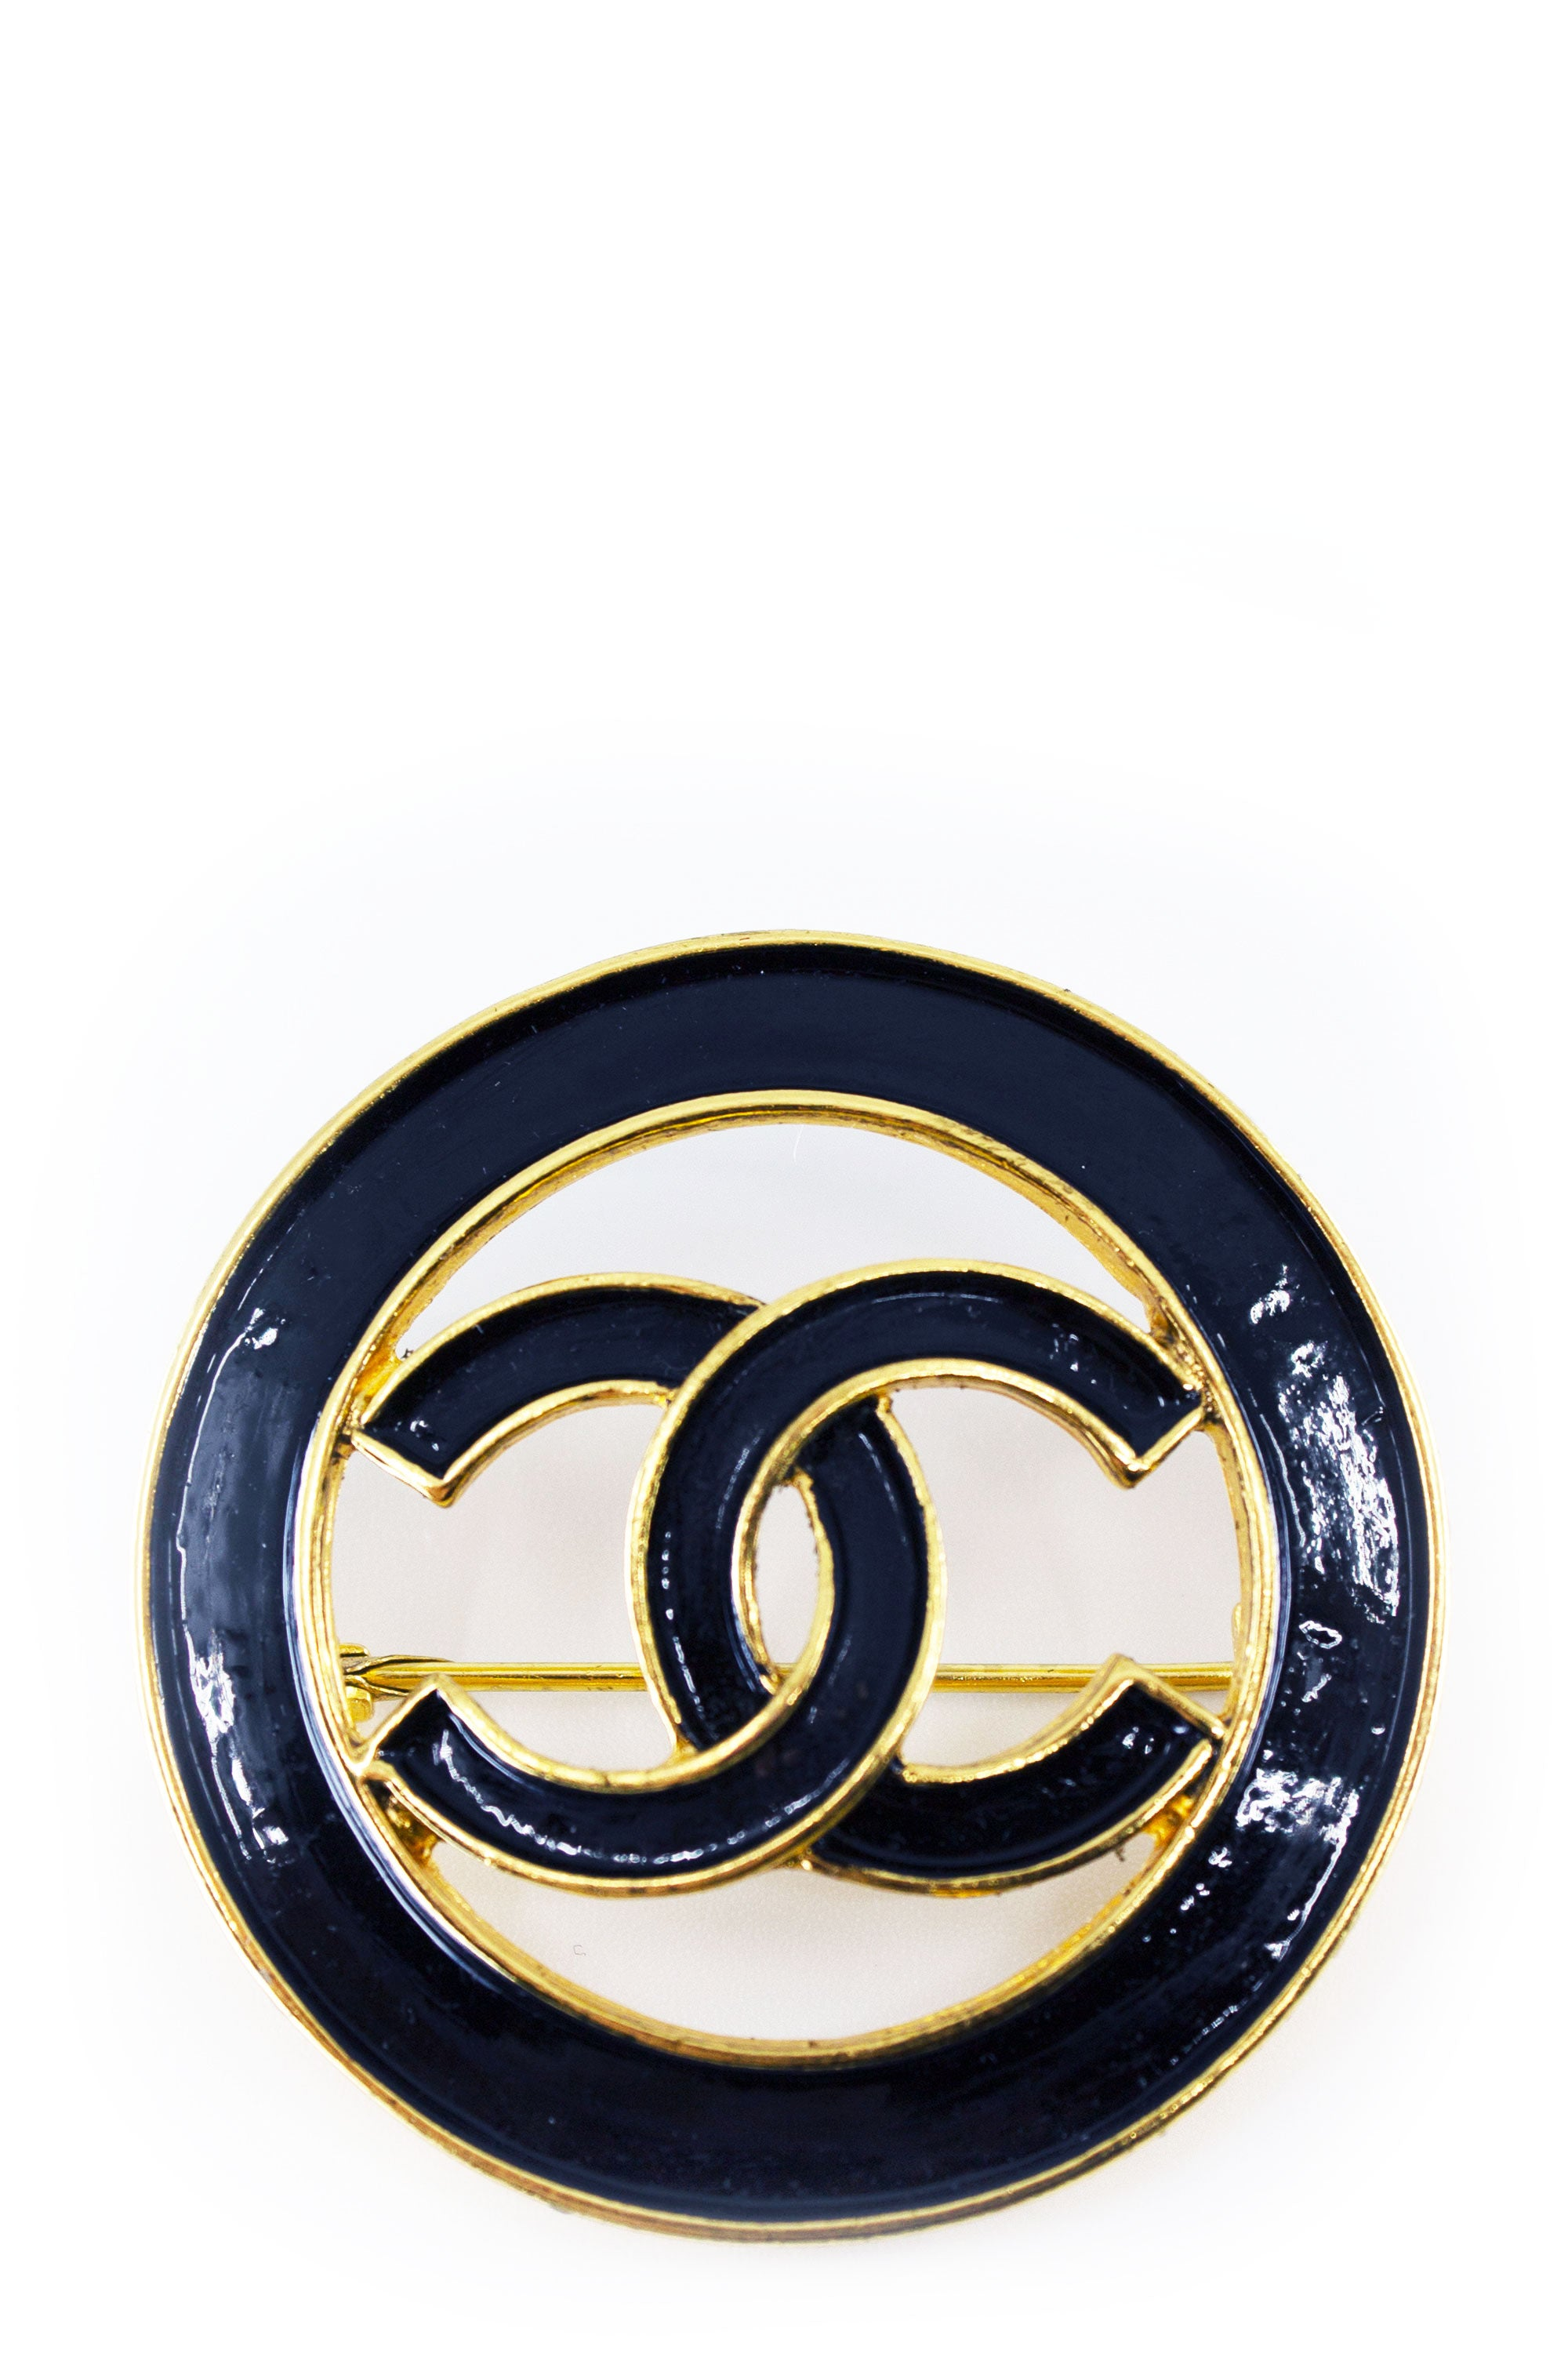 CHANEL Vintage Pin CC Black and Gold